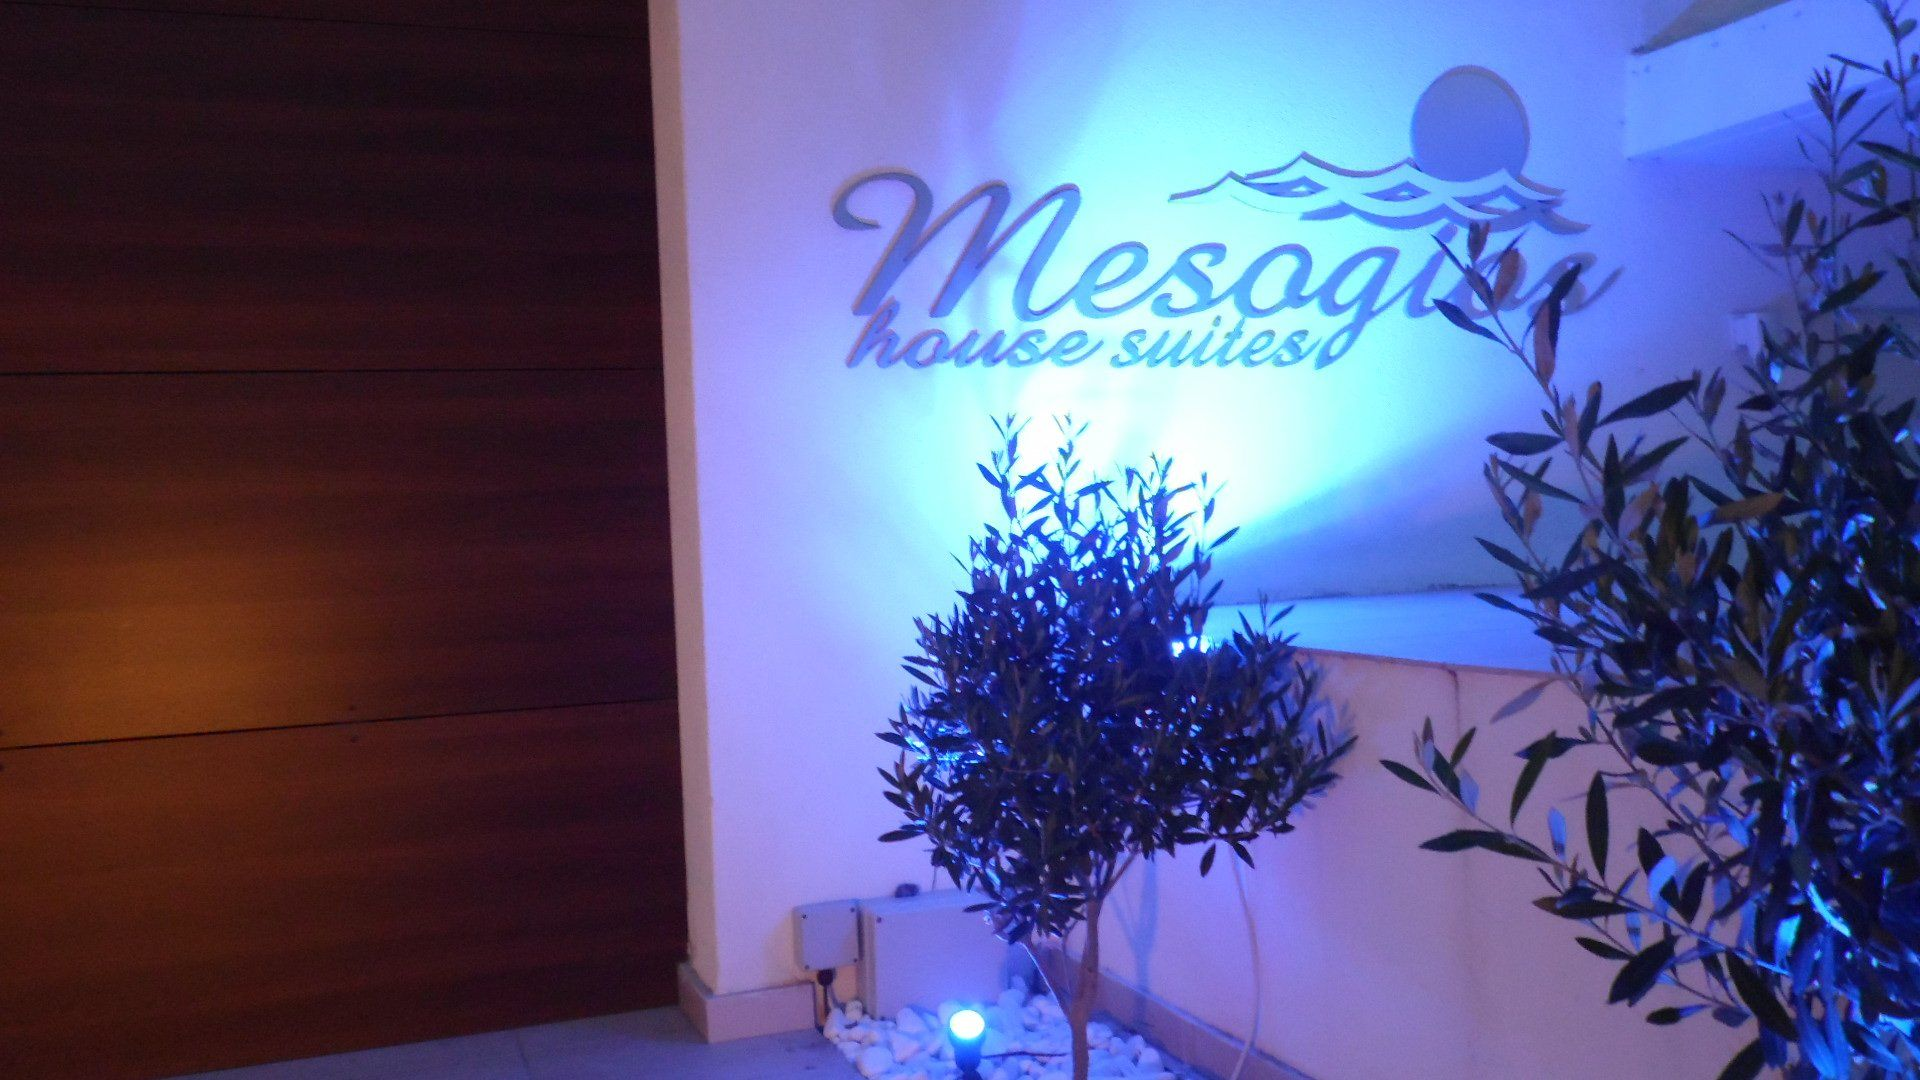 Mesogios House Suites